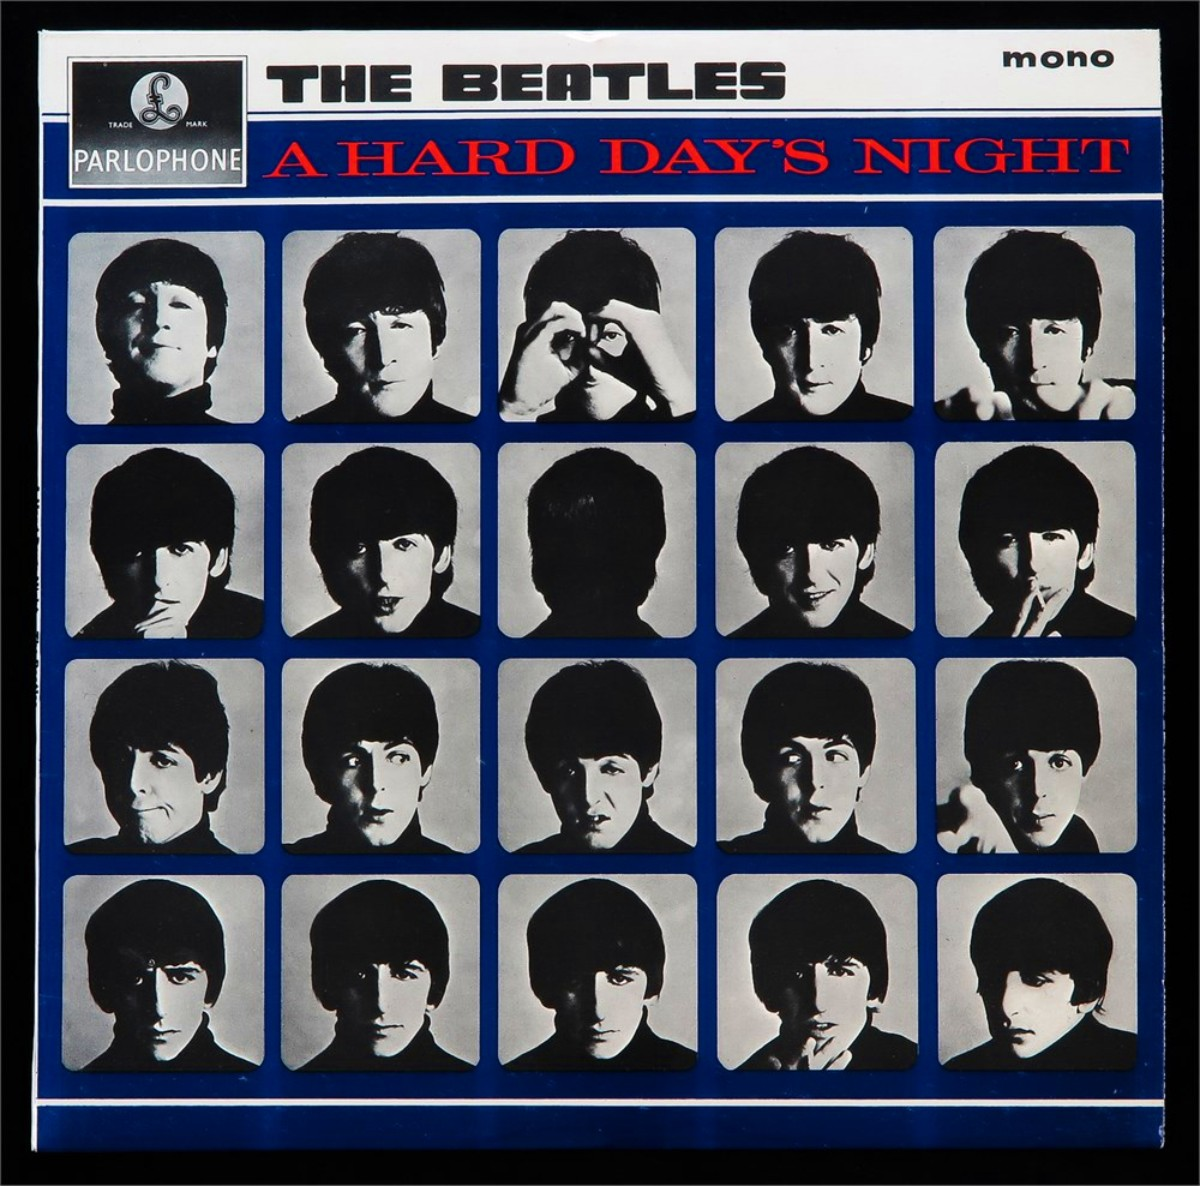 The Beatles, «A Hard Day's Night» (обложка альбома)